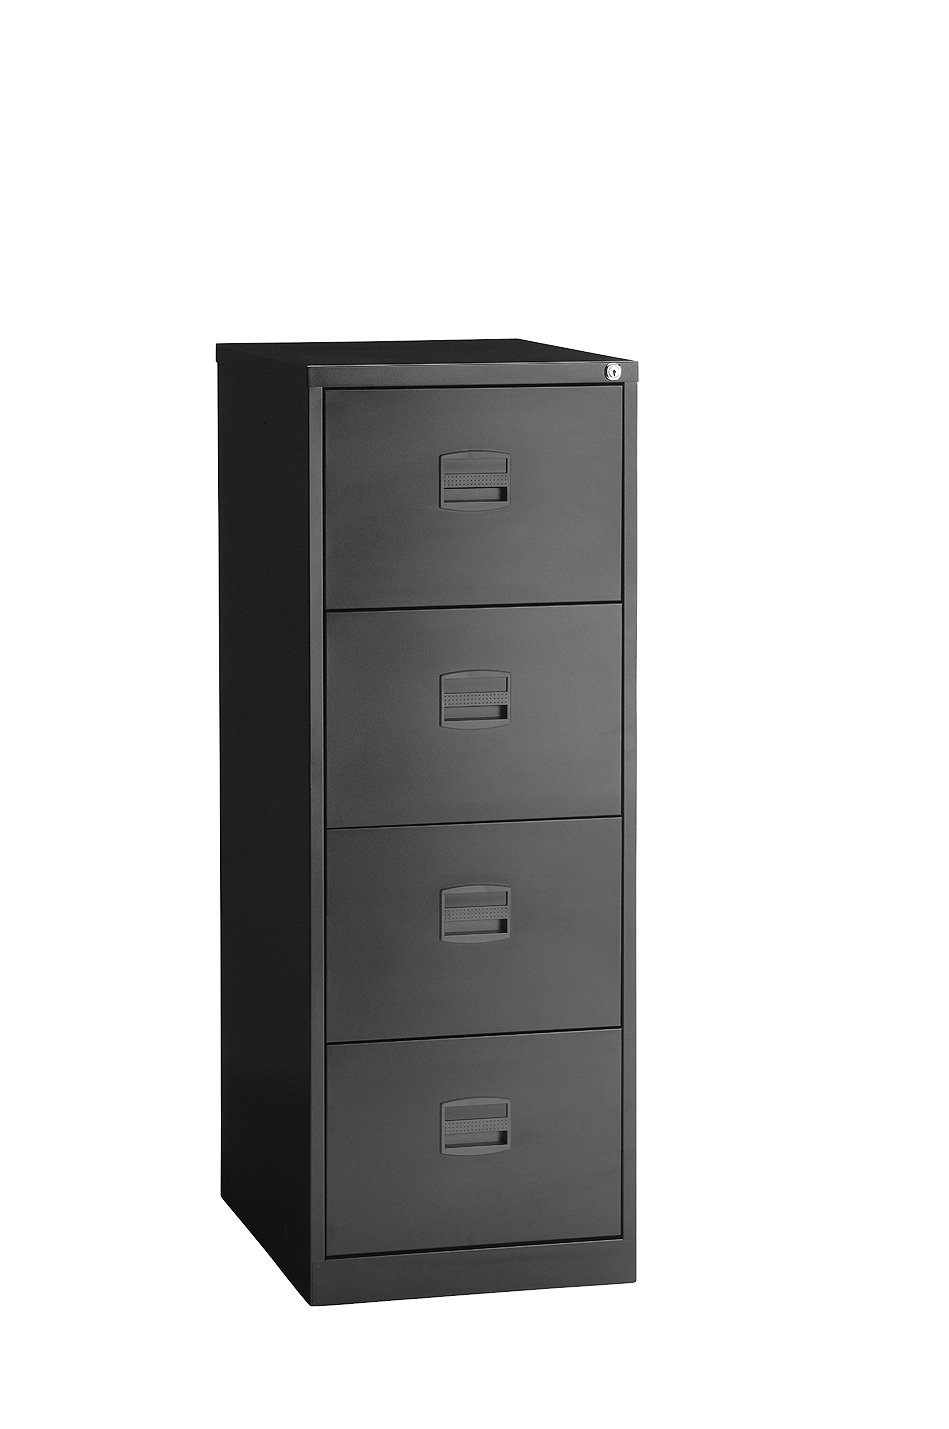 Trexus Steel Ccha Av Filing Cabinet  Drawer Foolscap Hxwxdmm Black Amazon Co Uk Kitchen Home